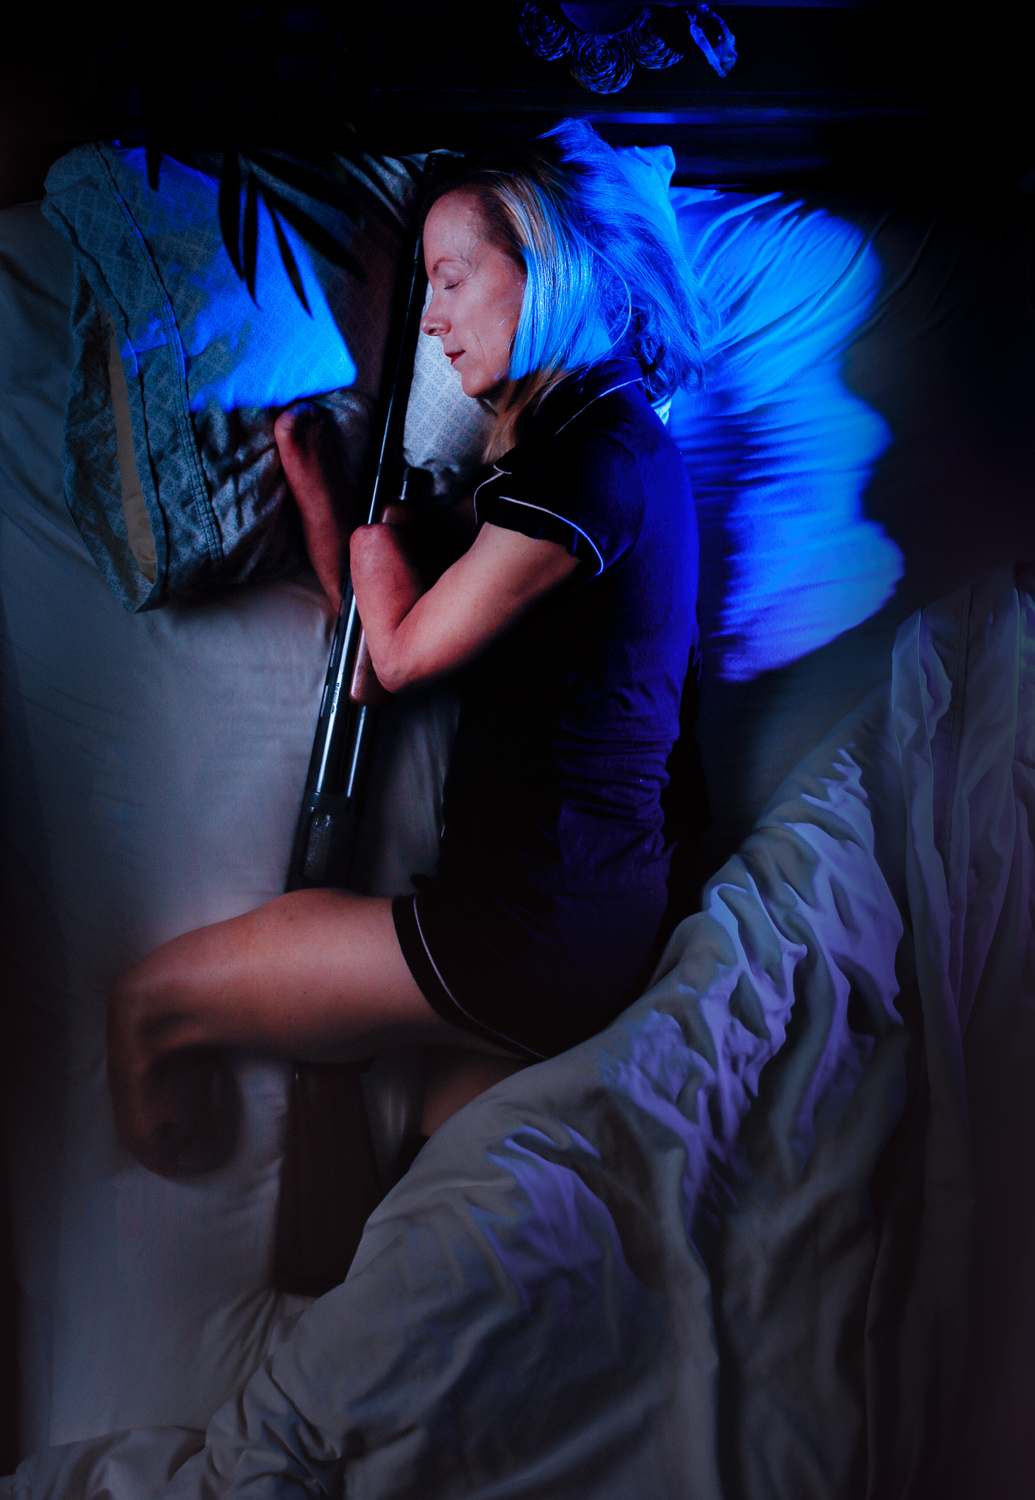 Woman slepping with a rifle